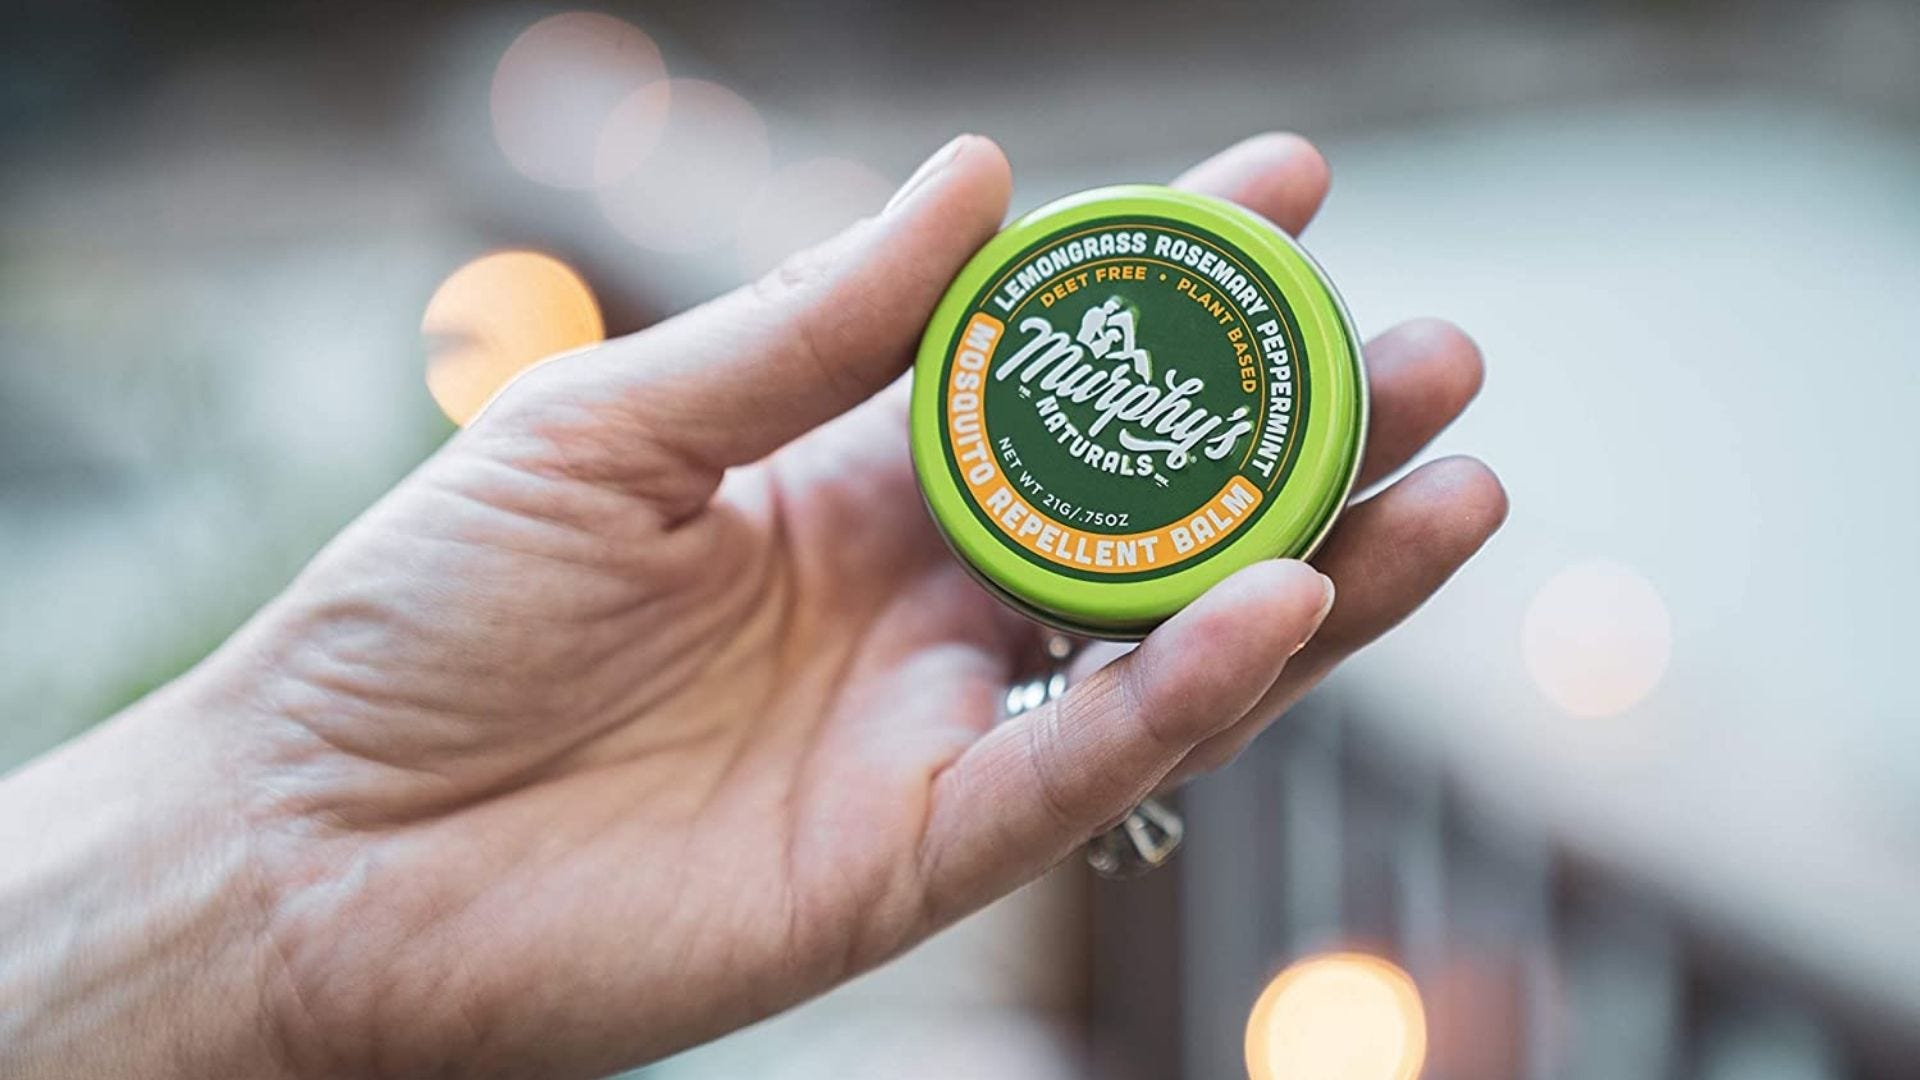 Someone holds a round container of bug repellent balm